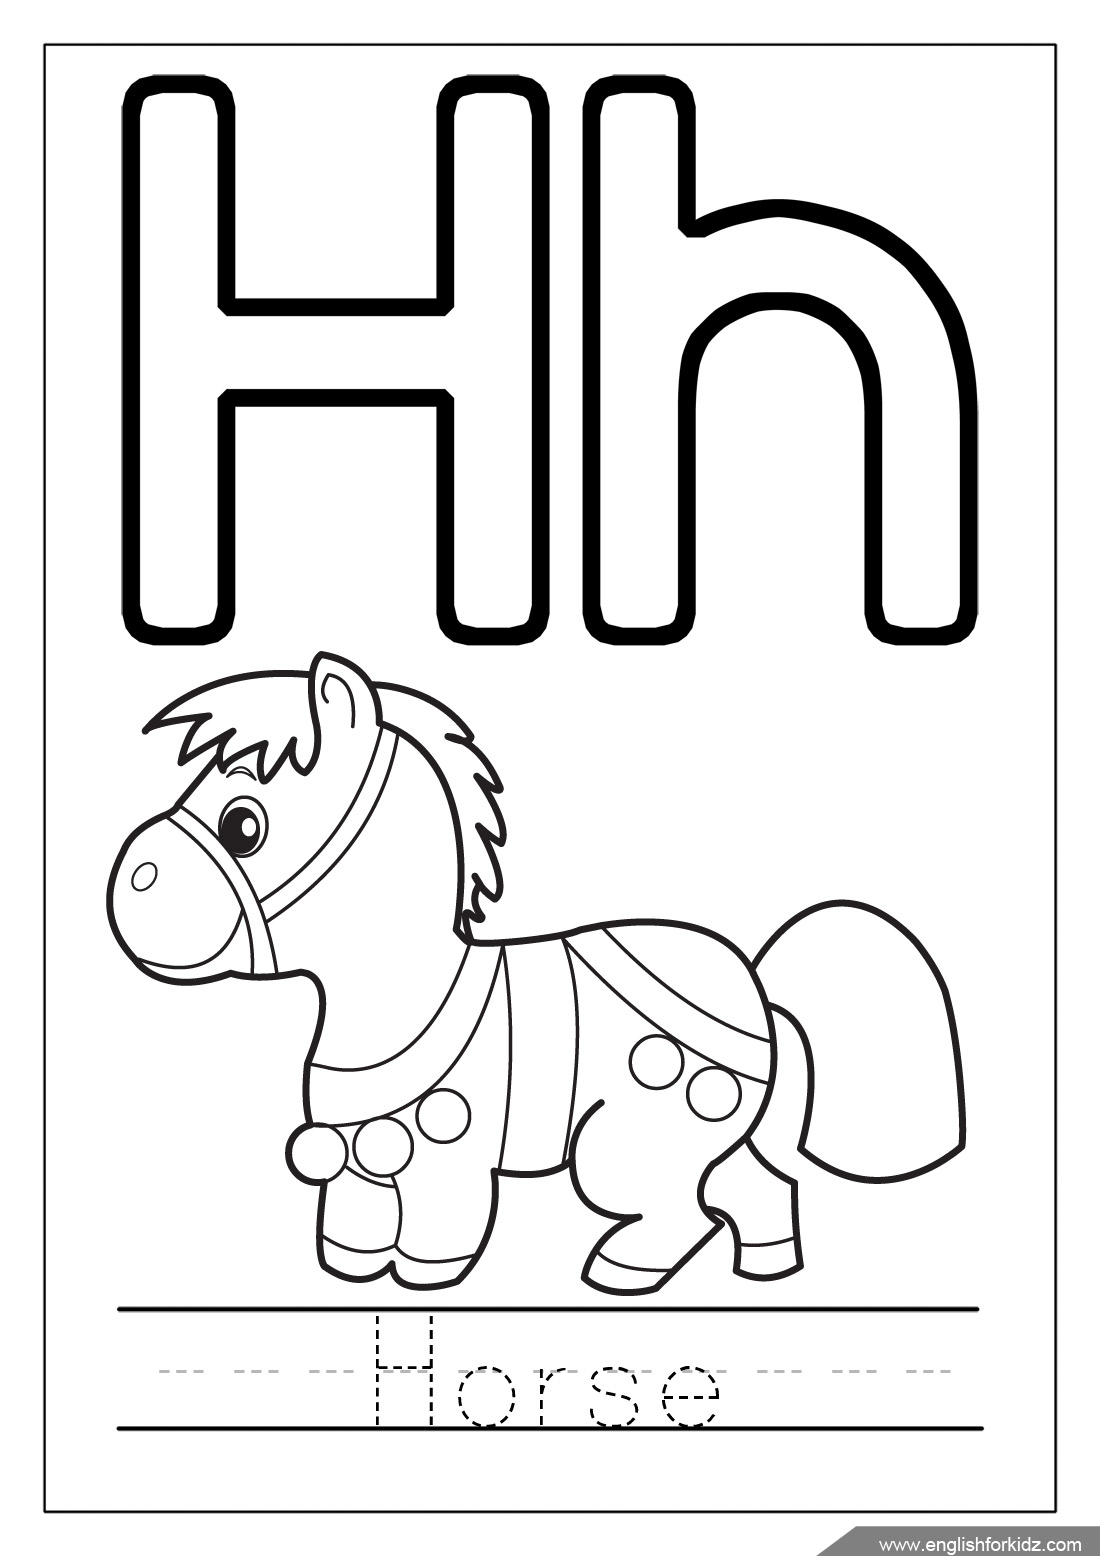 h coloring pages - photo#13